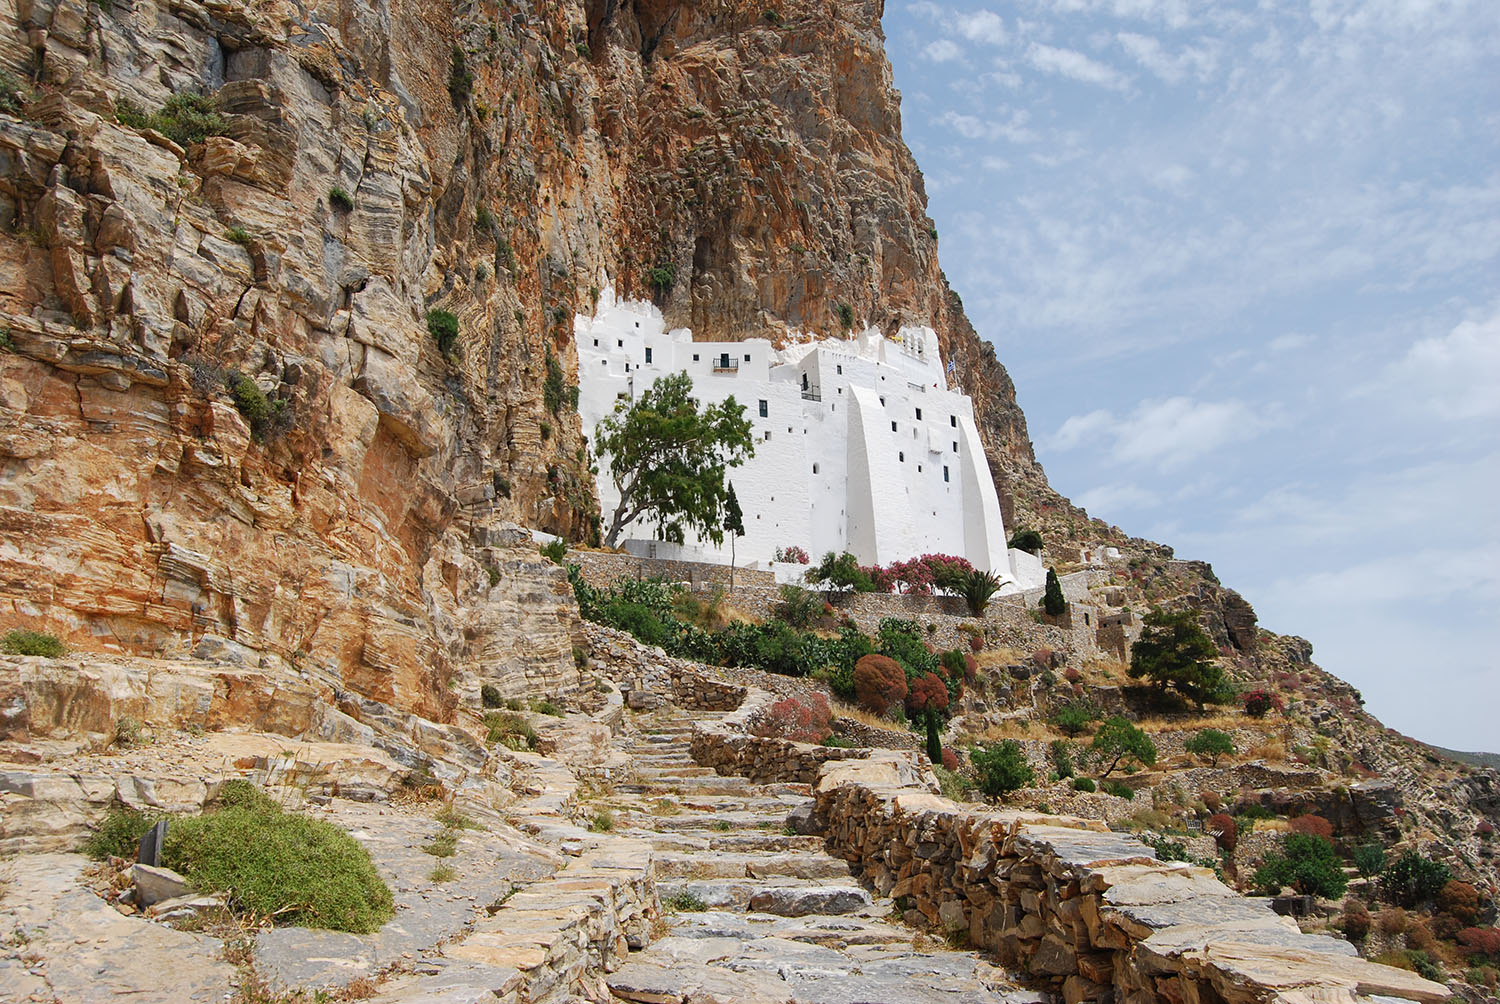 The Monastery of Hozoviotissa